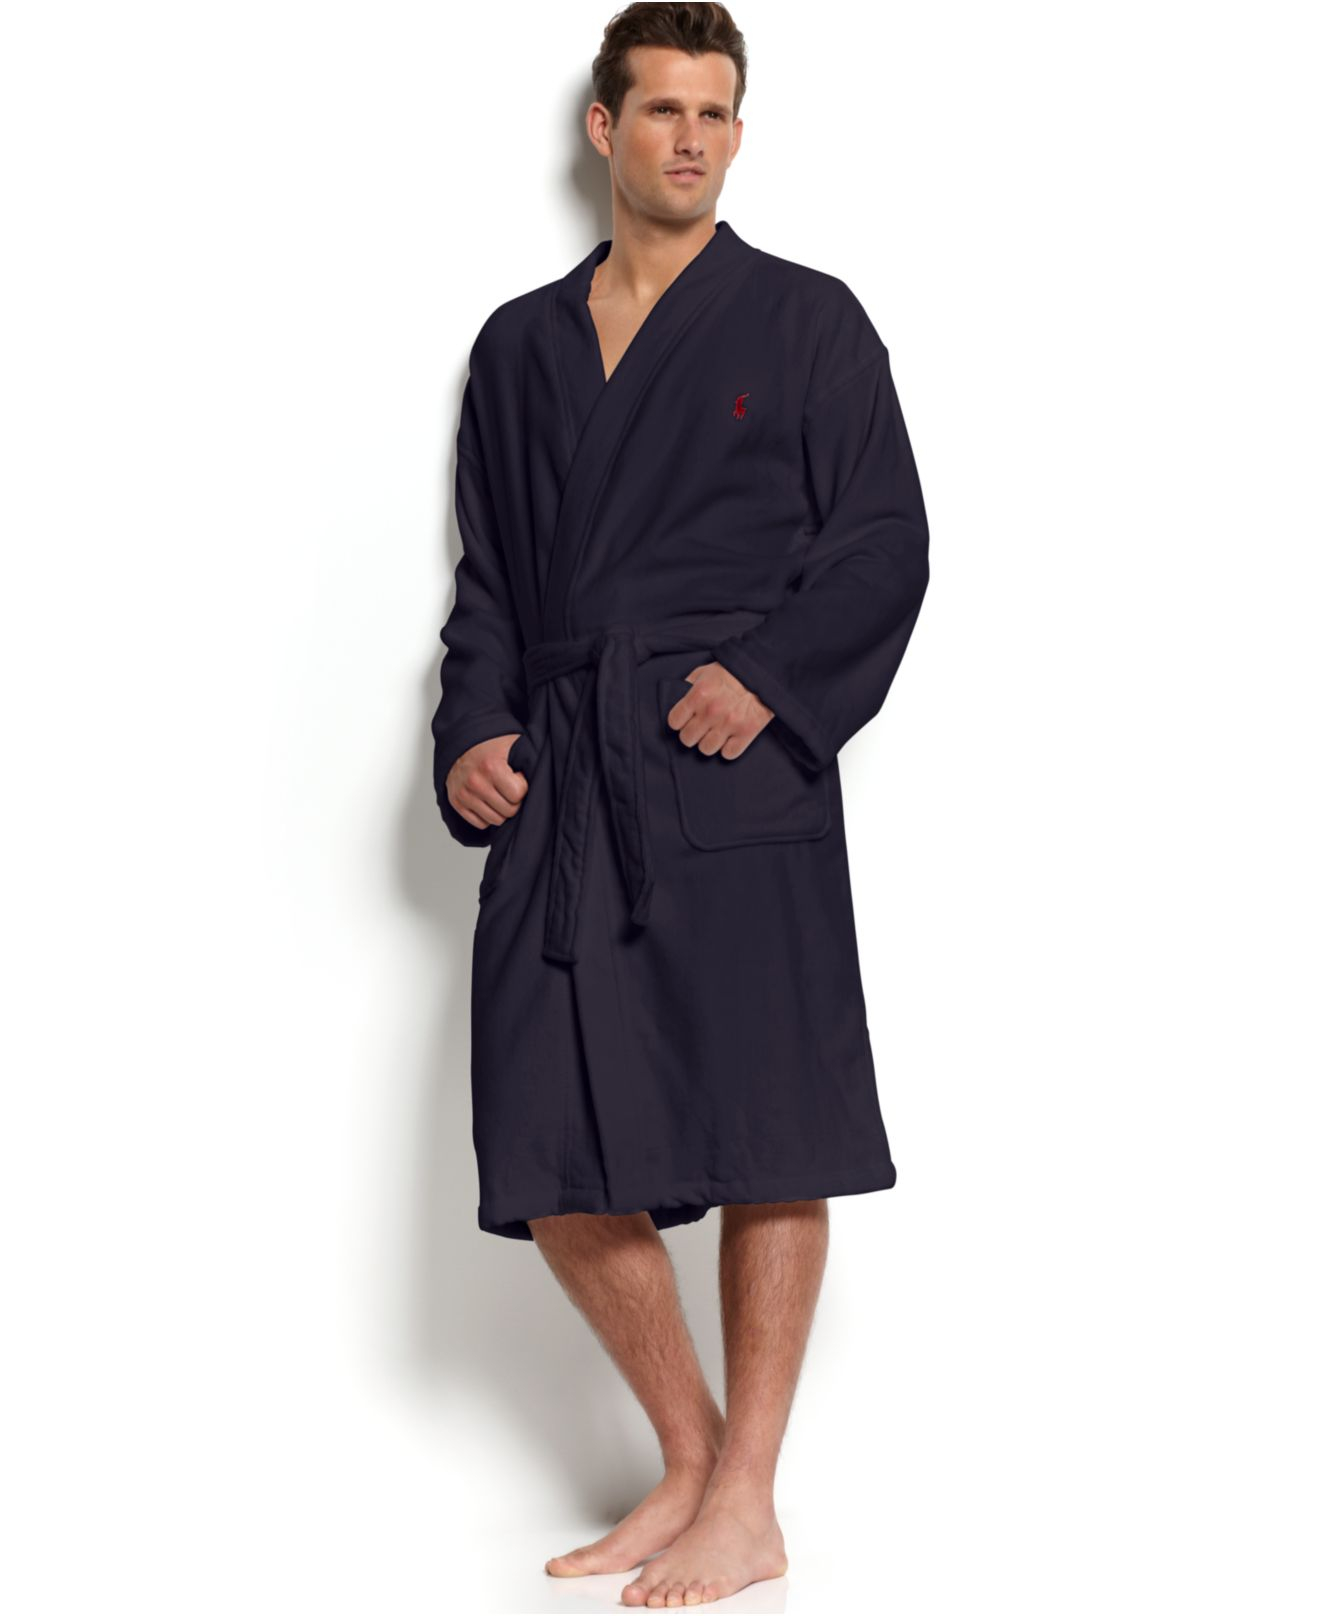 polo ralph lauren ralph lauren big tall men 39 s sleepwear terry kimono robe in blue for men lyst. Black Bedroom Furniture Sets. Home Design Ideas